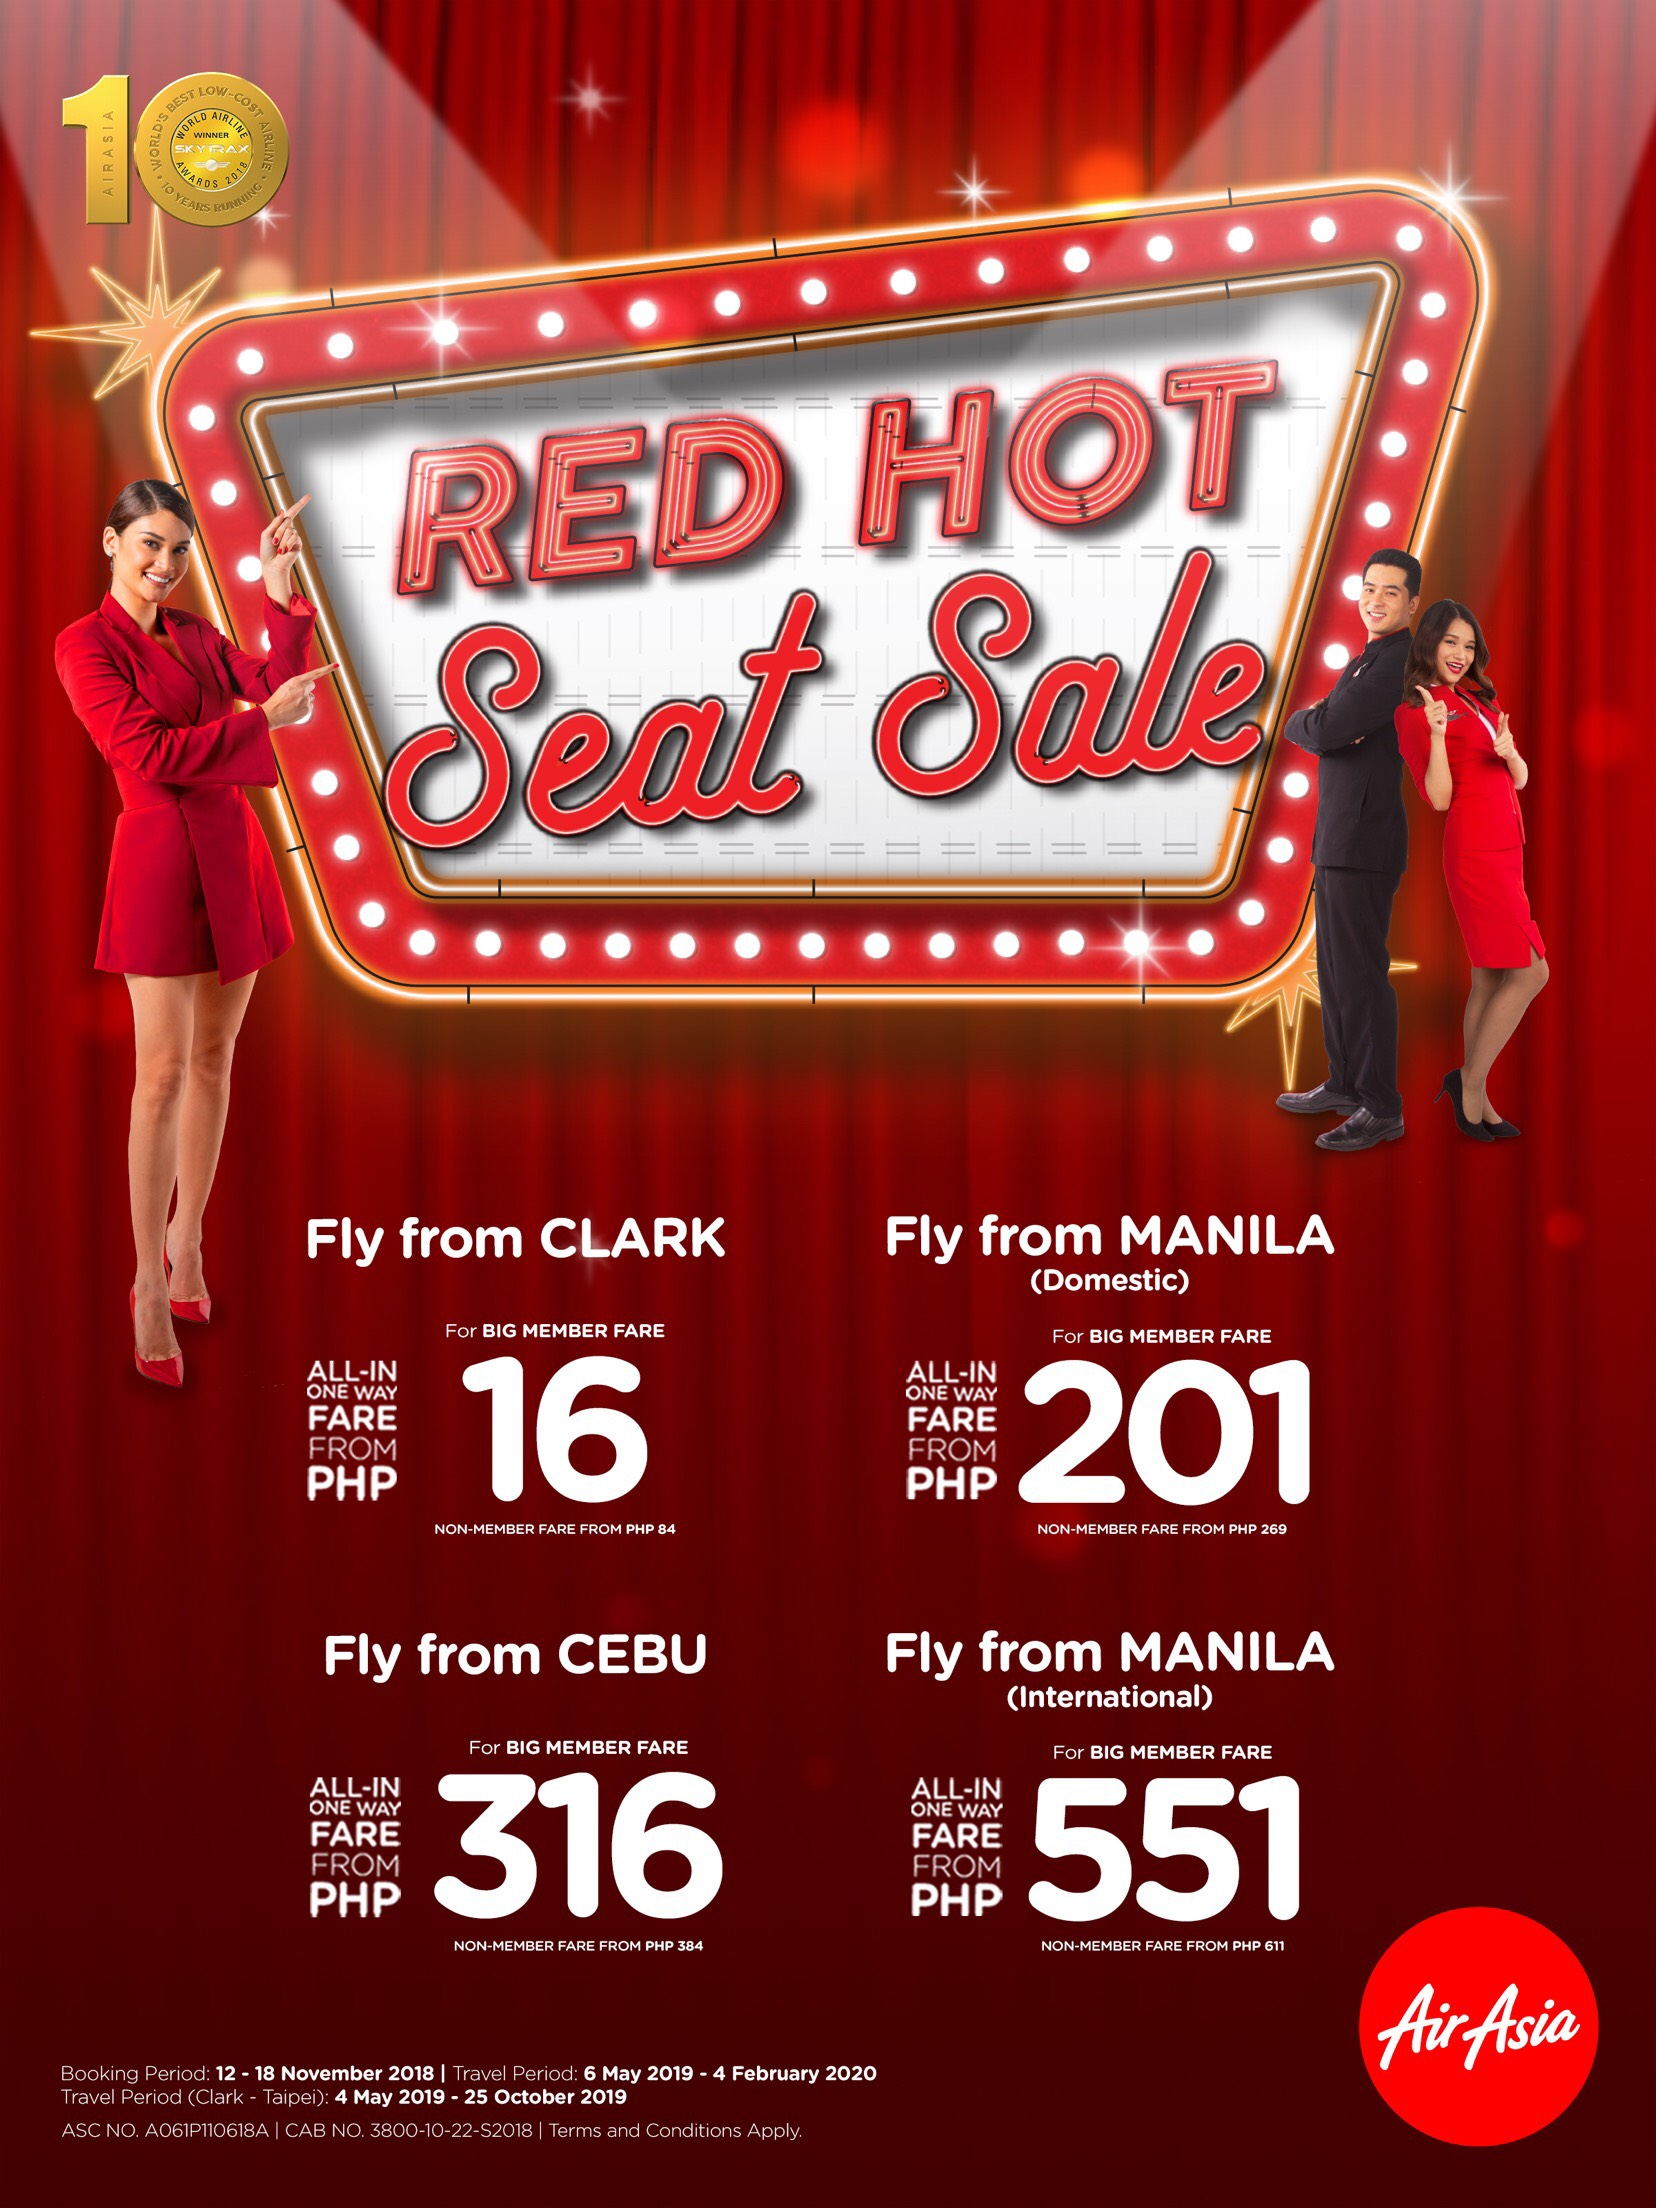 AirAsia Final Red Hot Seat Sale